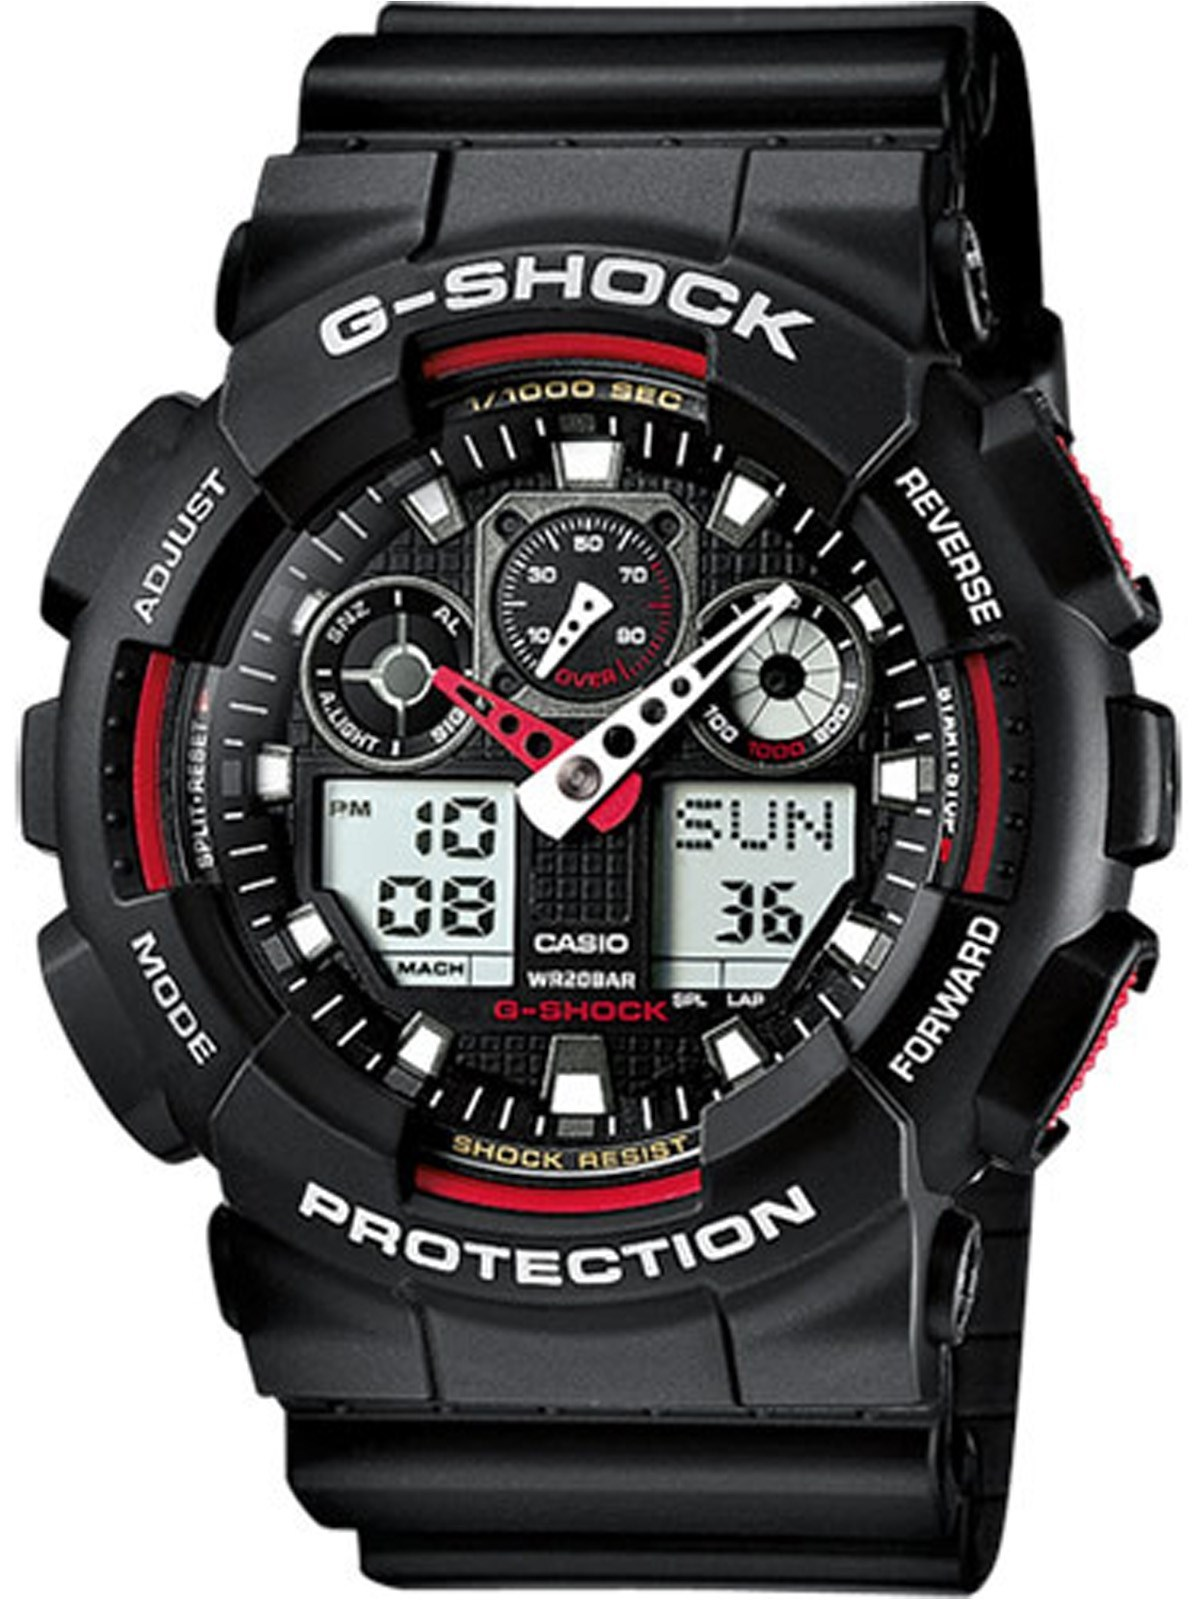 Casio Men's G Shock Black and Red Analog GA100-1A4 Watch Wristwatch for sale  USA